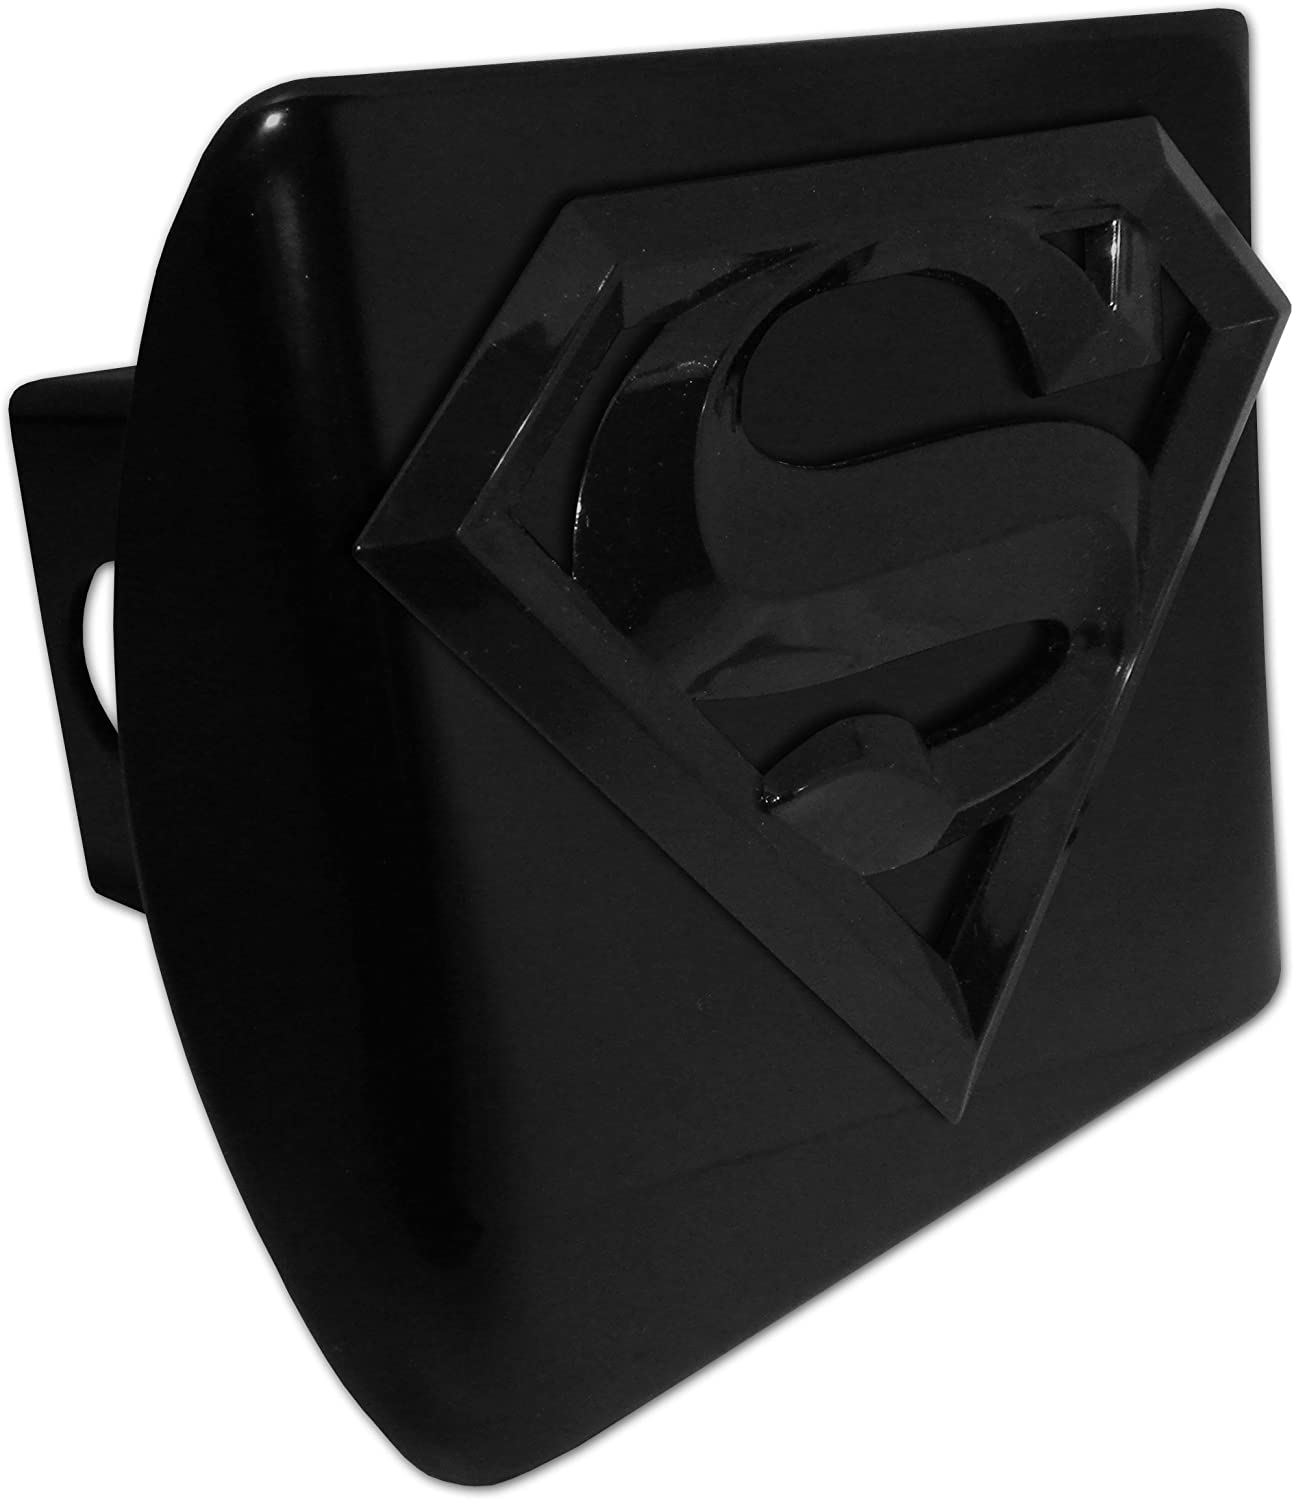 Superman Opening large release sale free shipping Black and All Cover Hitch Metal